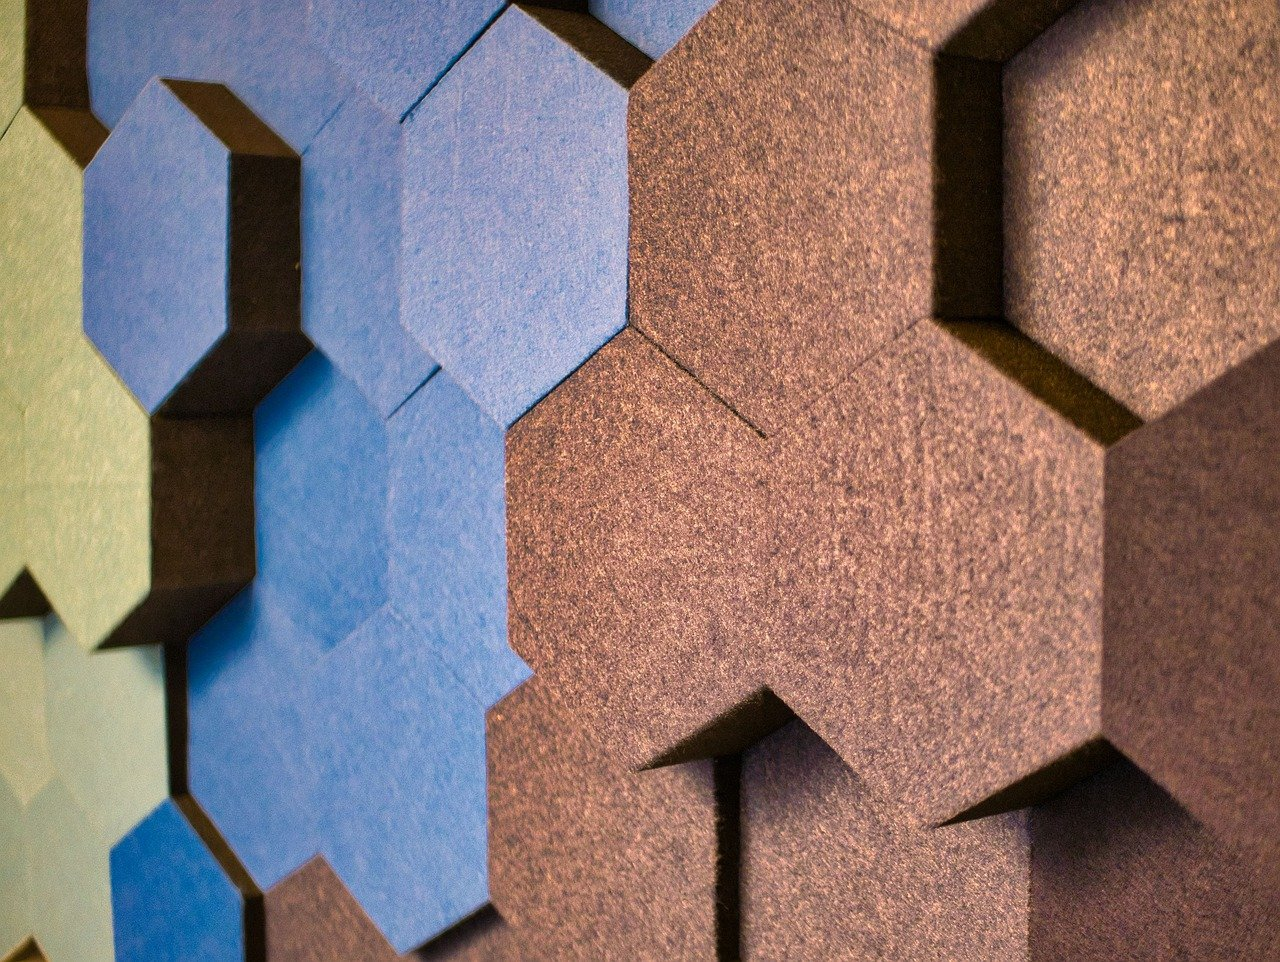 Soundproofing Materials